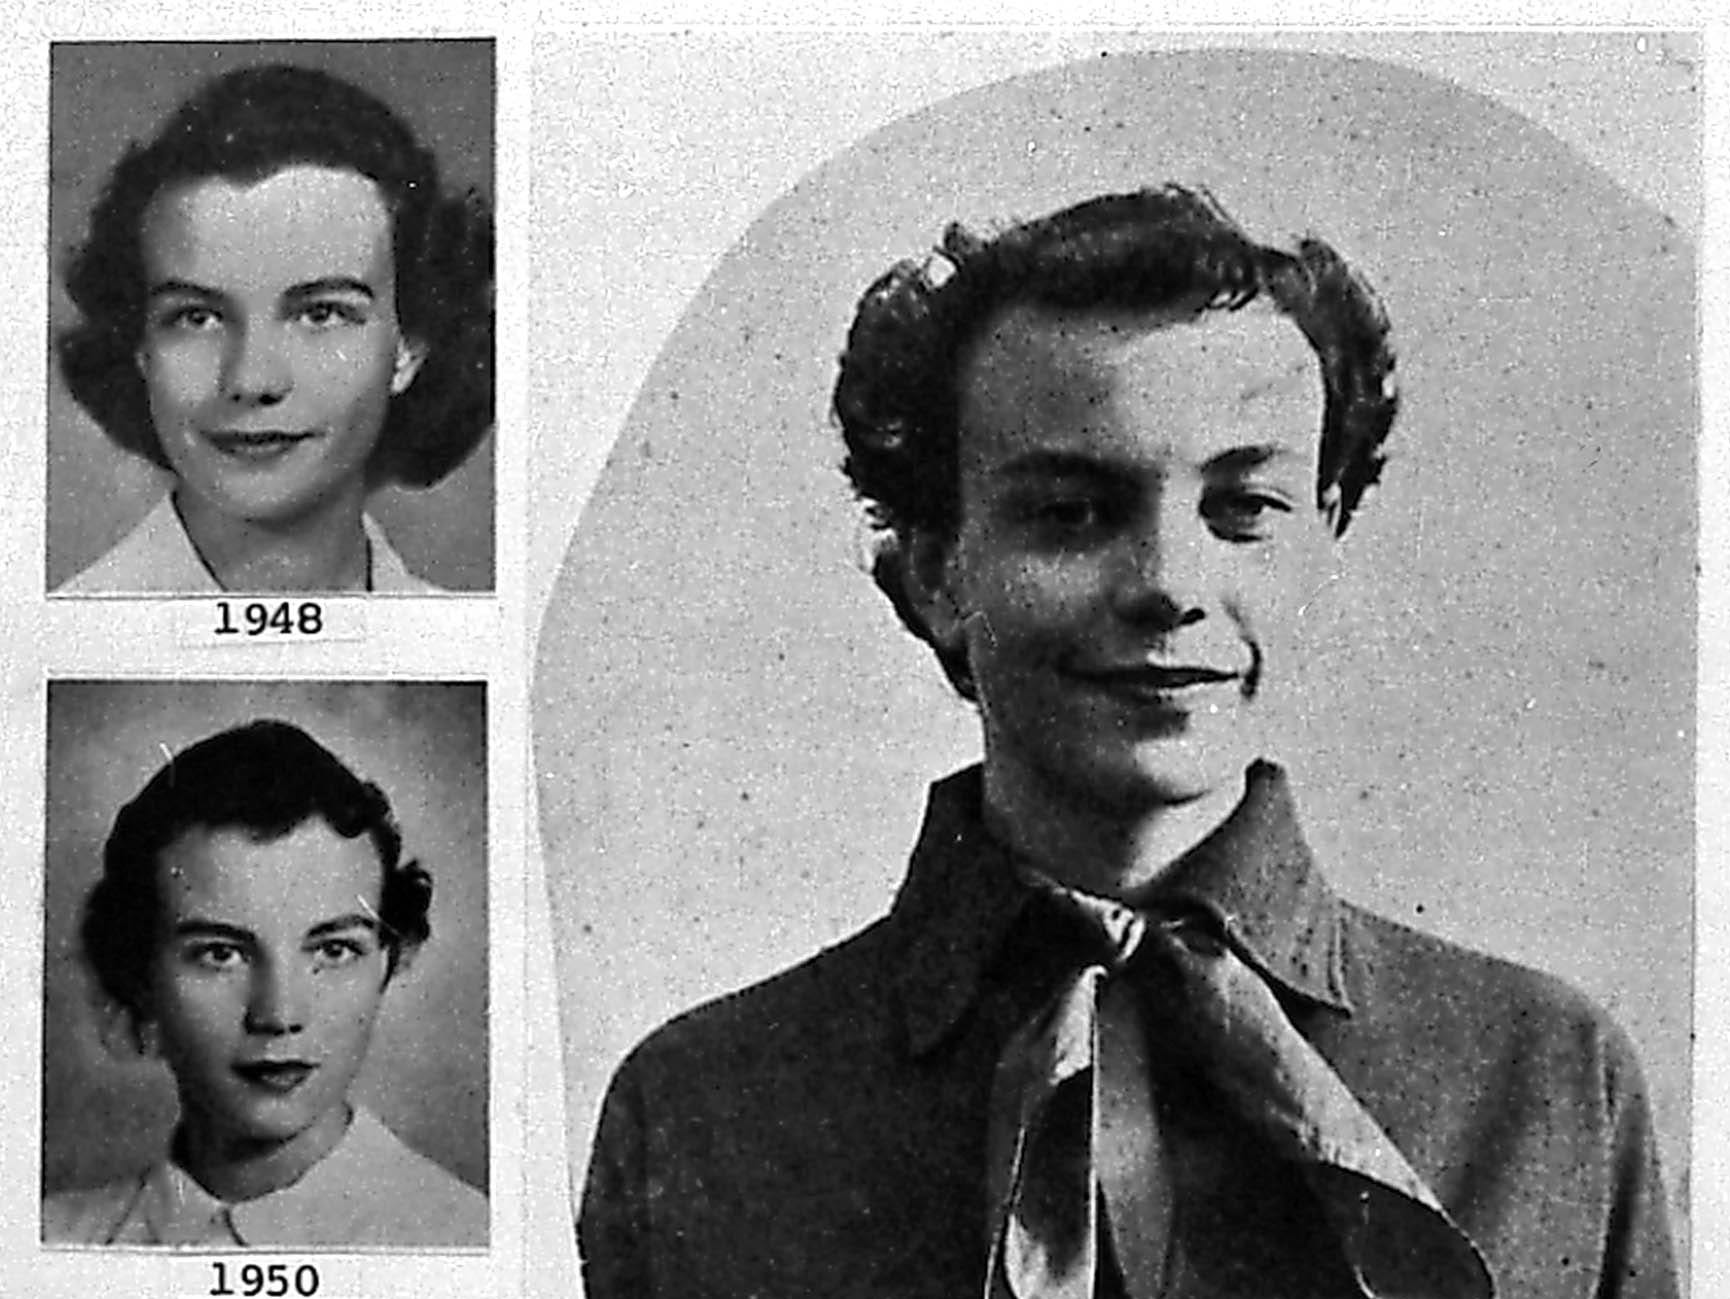 Photos of Sandra Day O'Connor during her college years.